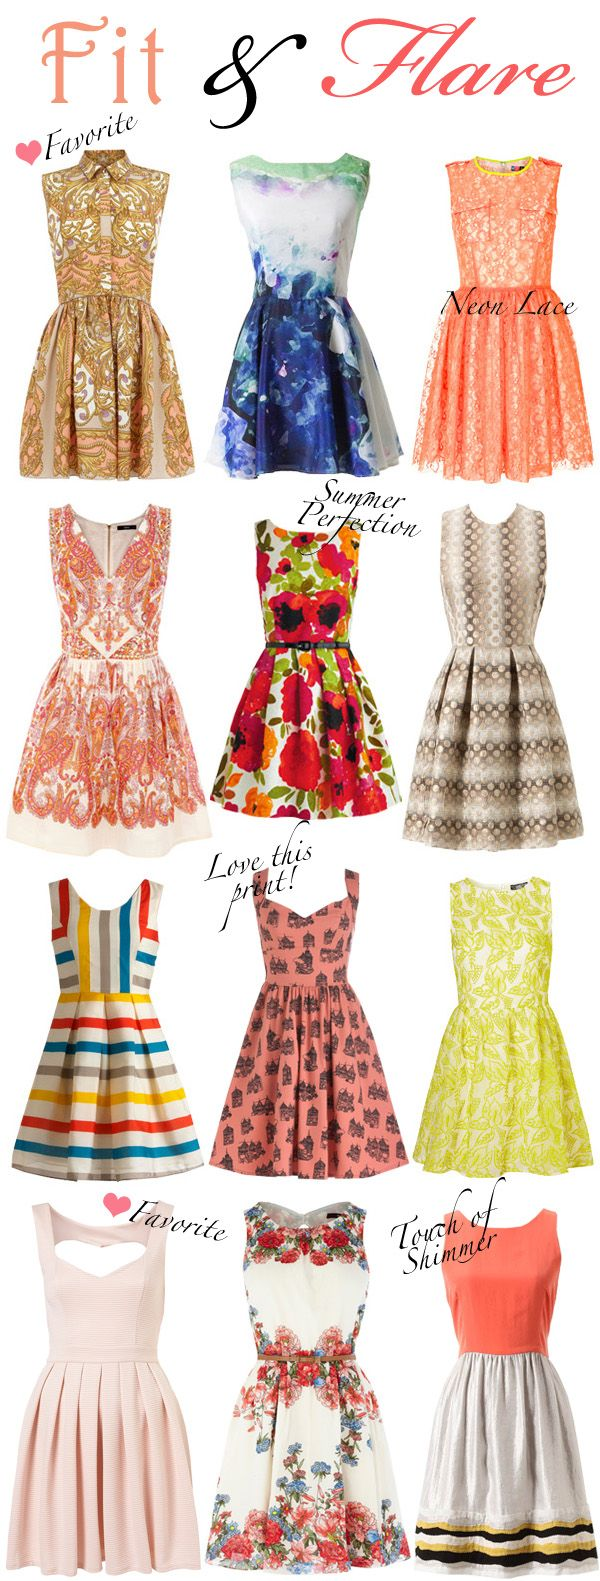 Adorable fit and flare dresses, perfect inspiration while shopping for your spring wardrobe! :: Vintage Fashion :: Retro Clothing:: Retro dresses:: Spring Style